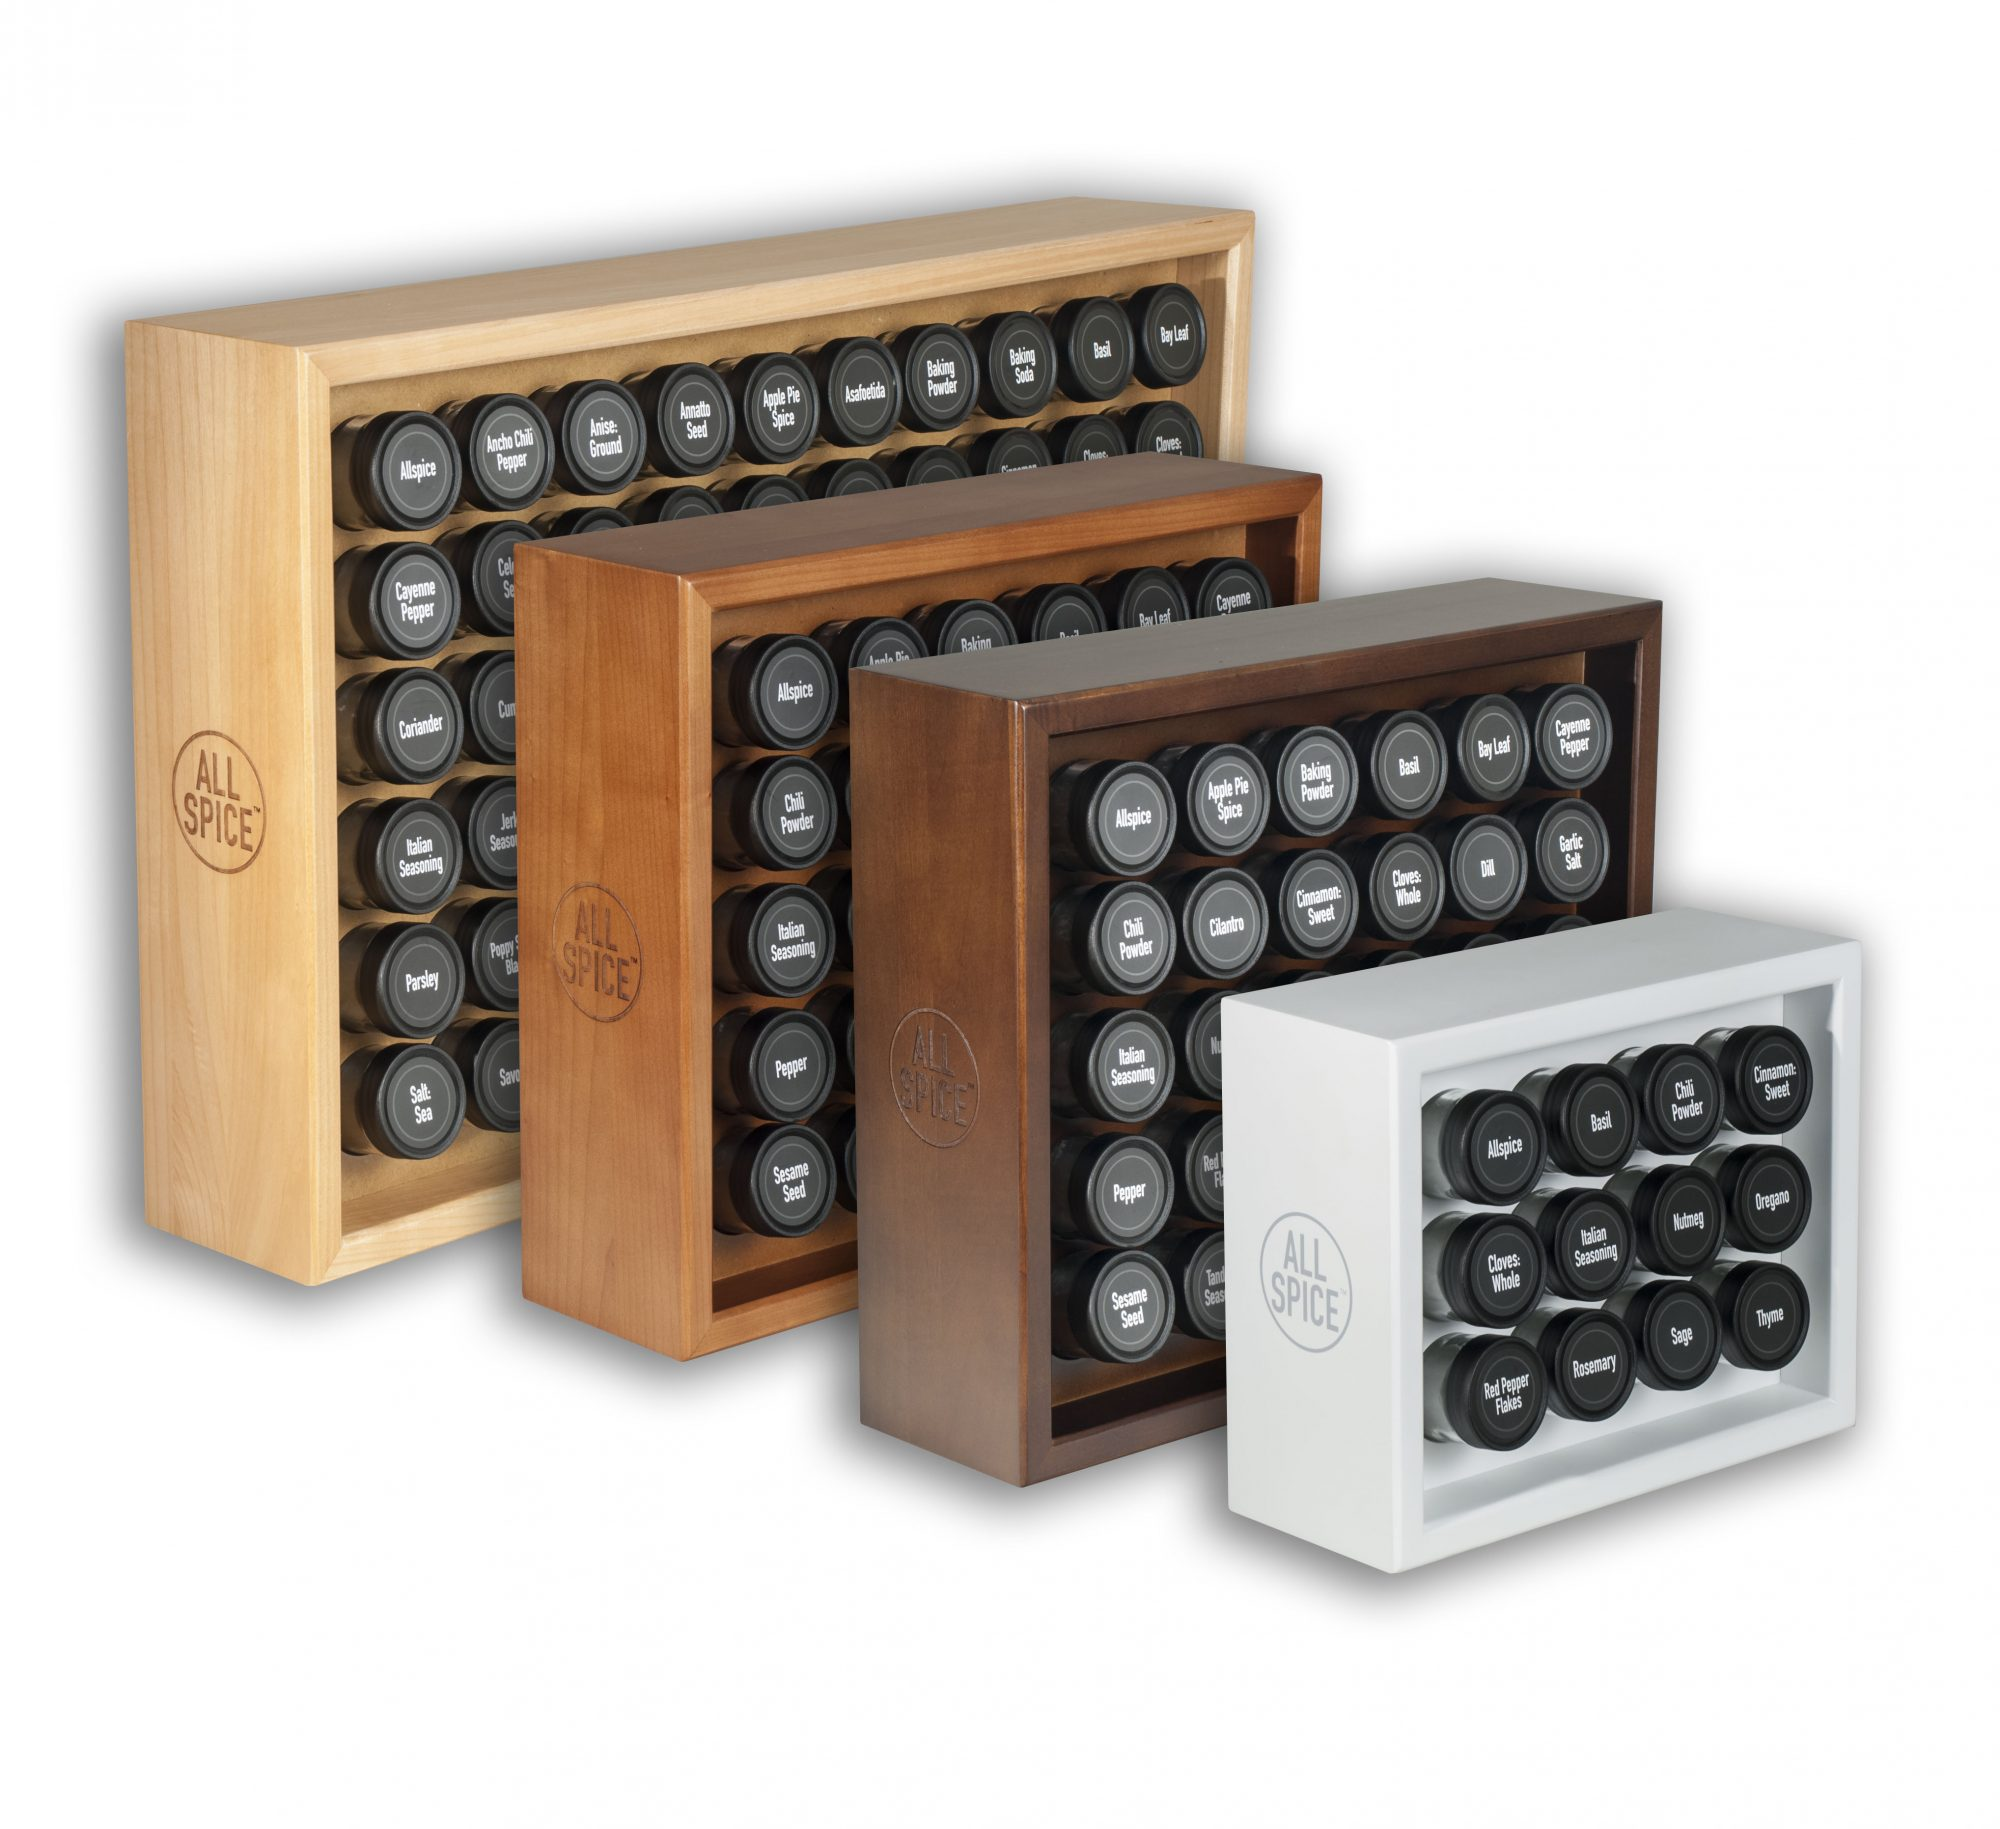 AllSpice Spice Rack, from $79